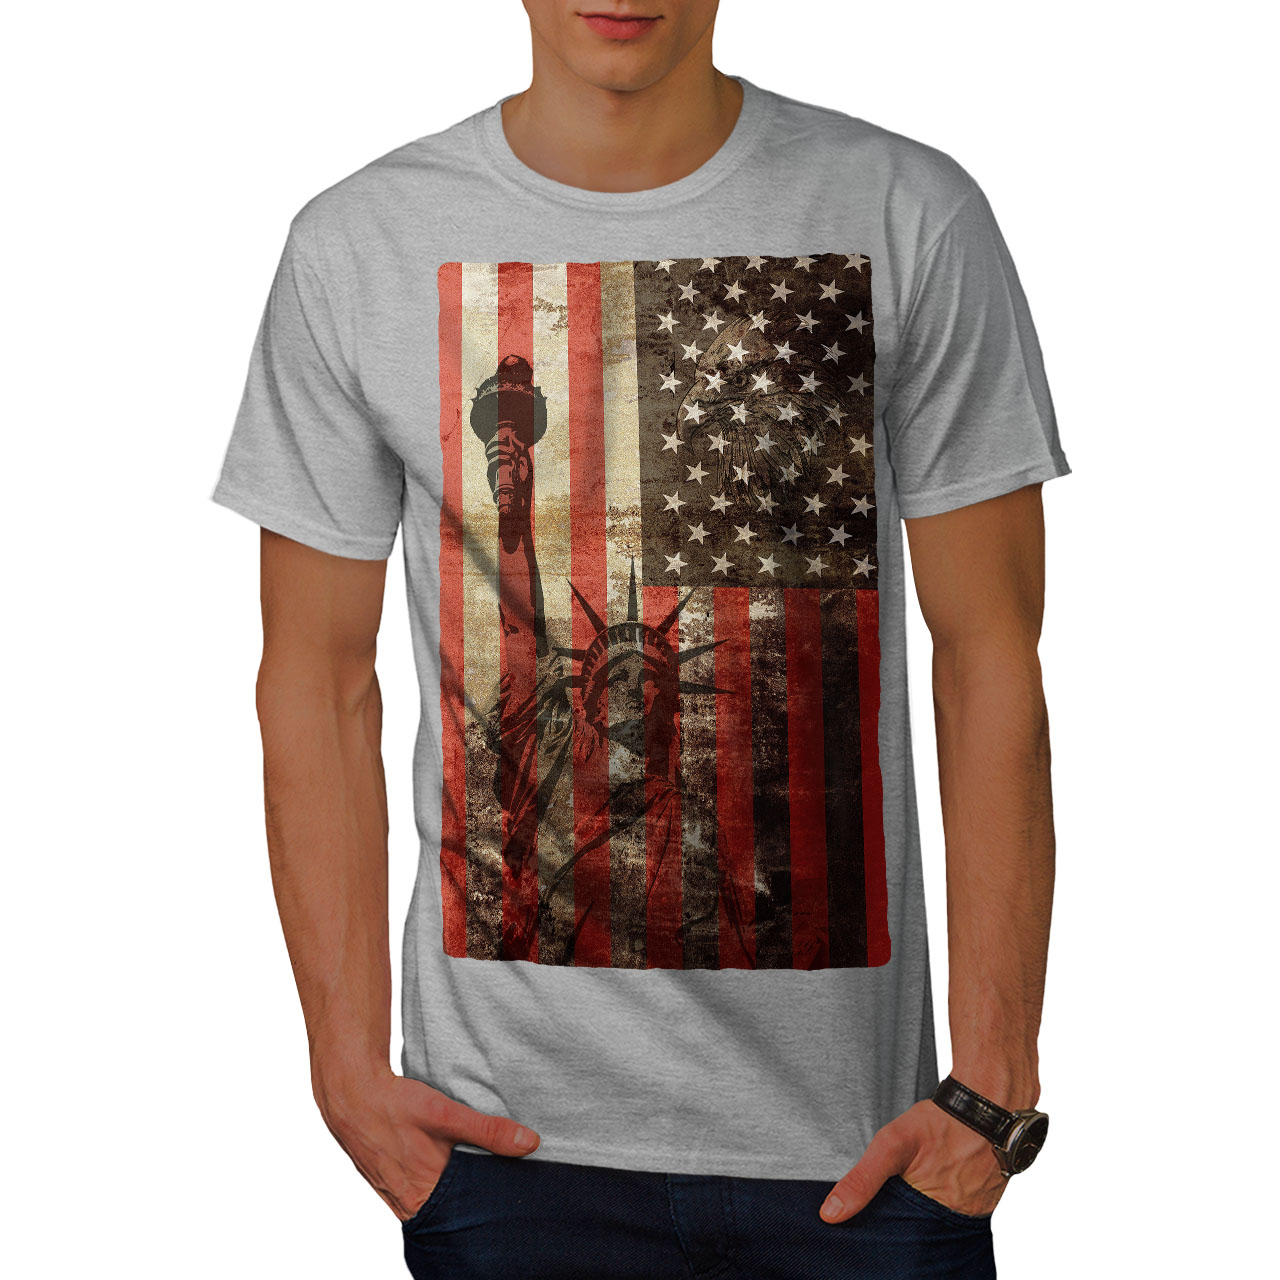 T Shirt Design York: Wellcoda New York Flag Liberty Mens T-shirt, Tourism